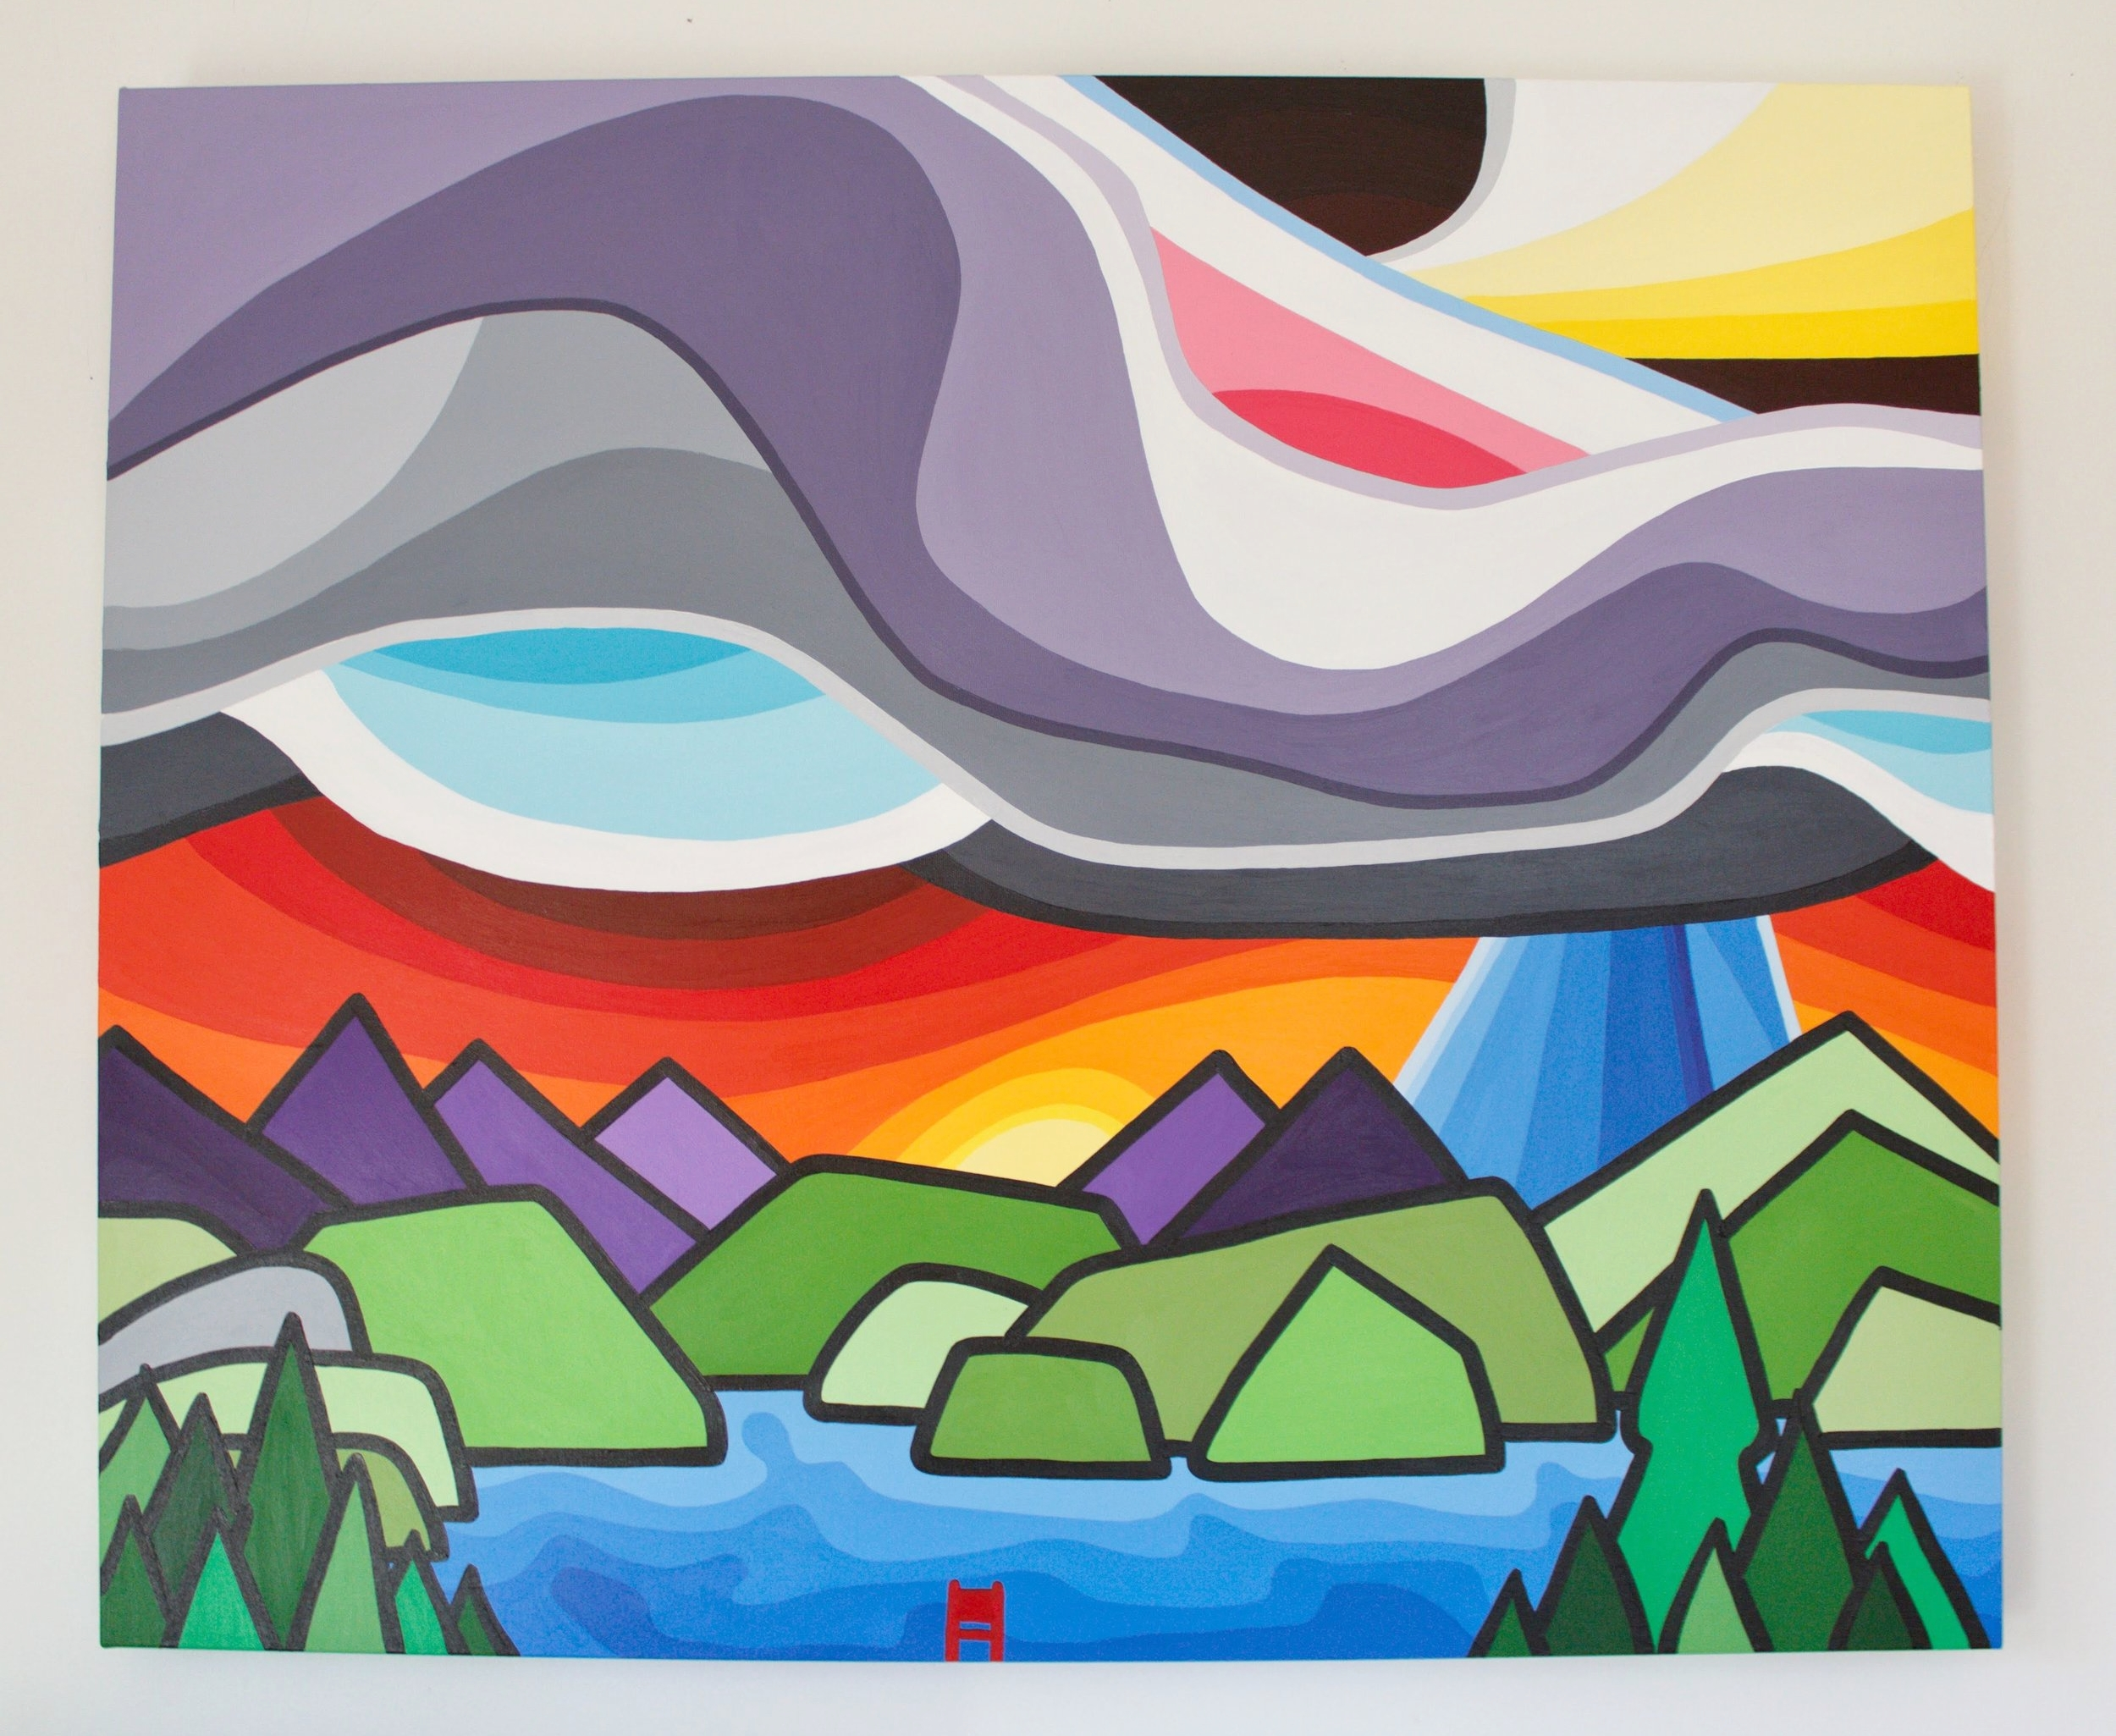 "Deep Cove - Size: 30"" x 36"" acrylic on canvasPrice: SOLD"